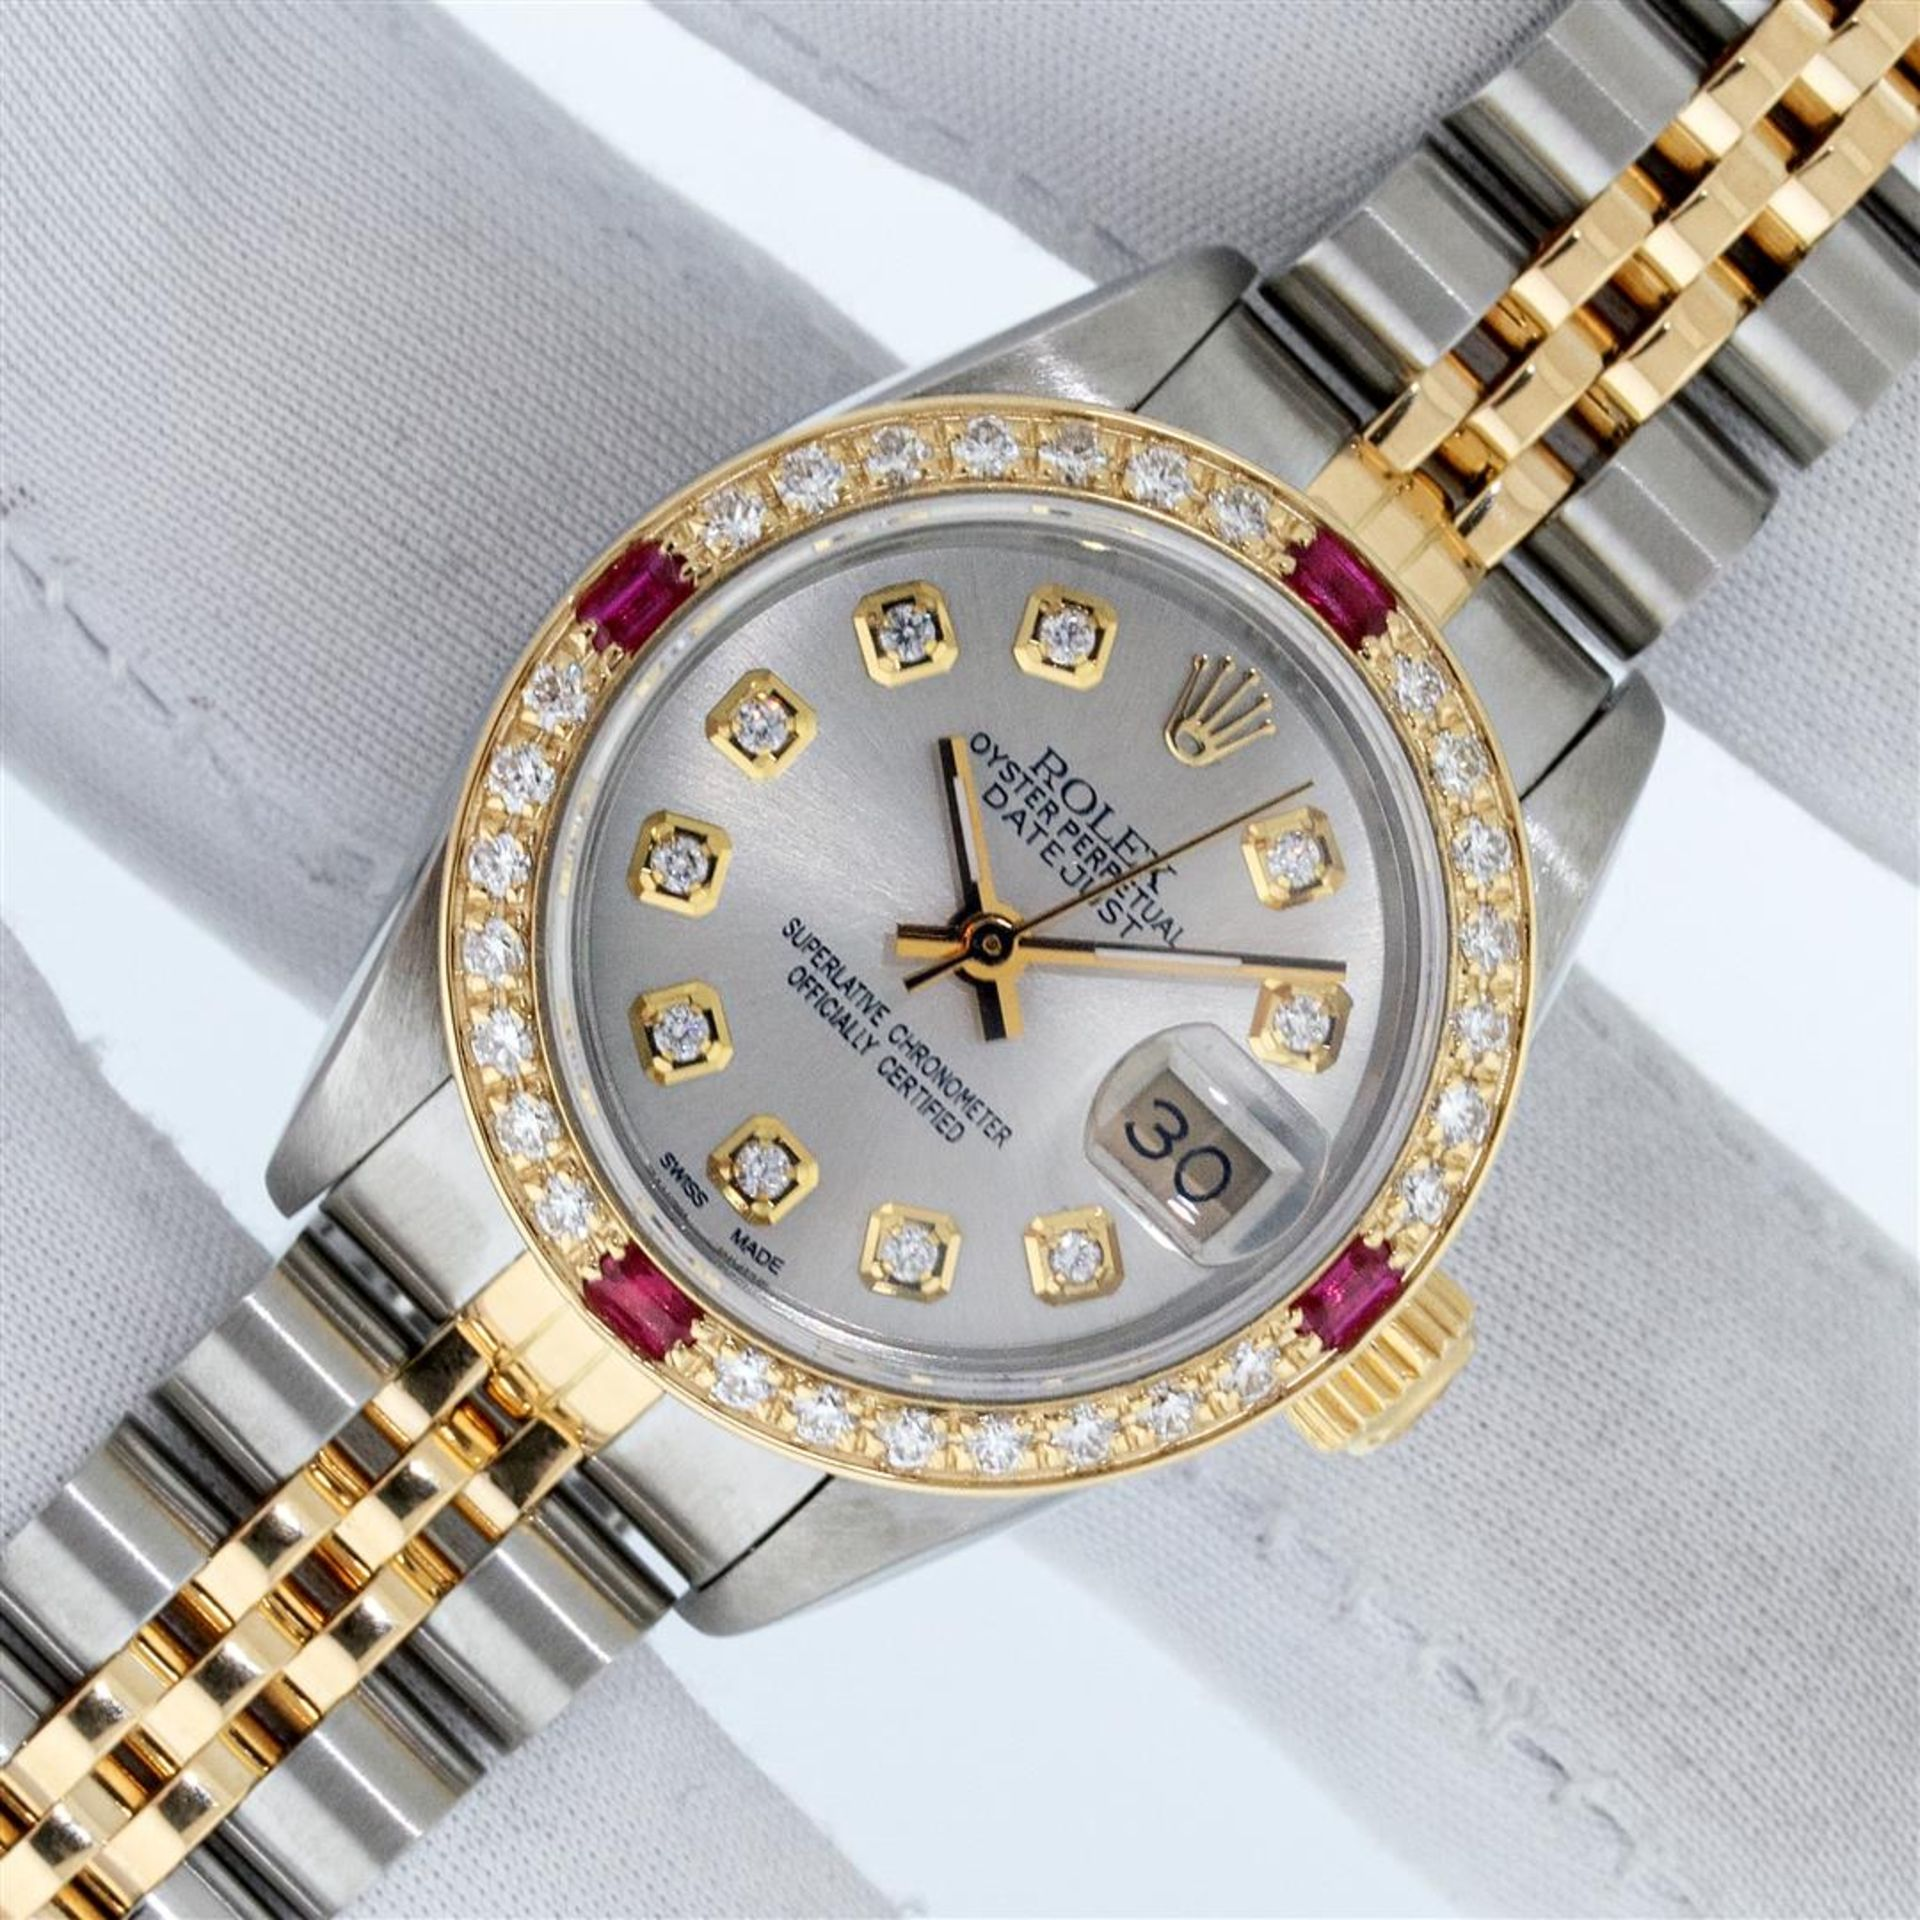 Rolex Ladies 2 Tone Silver Diamond & Ruby Oyster Perpetual Datejust Wristwatch - Image 2 of 9